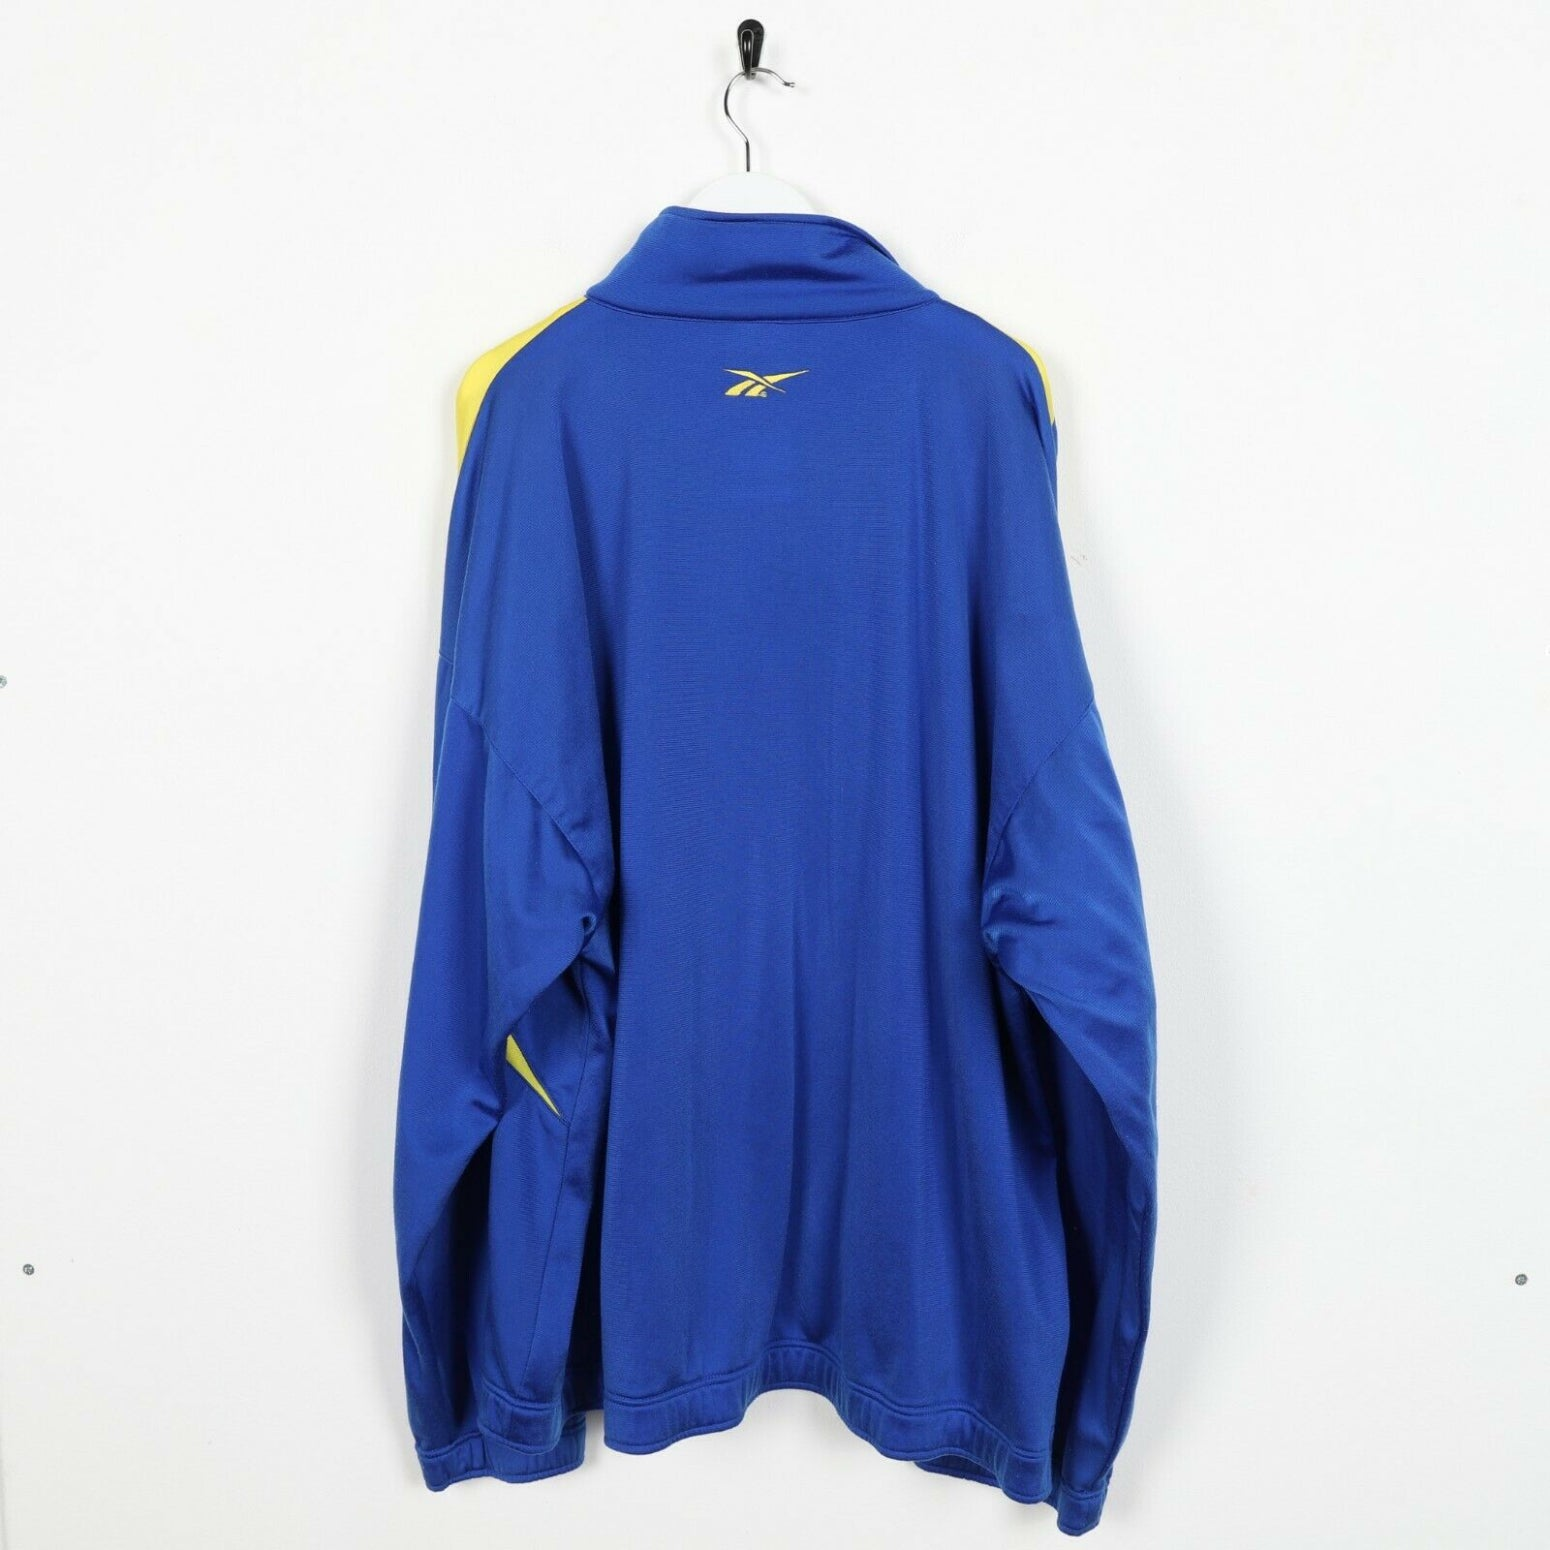 Vintage 90s REEBOK Small Logo Track Top Jacket Blue Yellow | 2XL